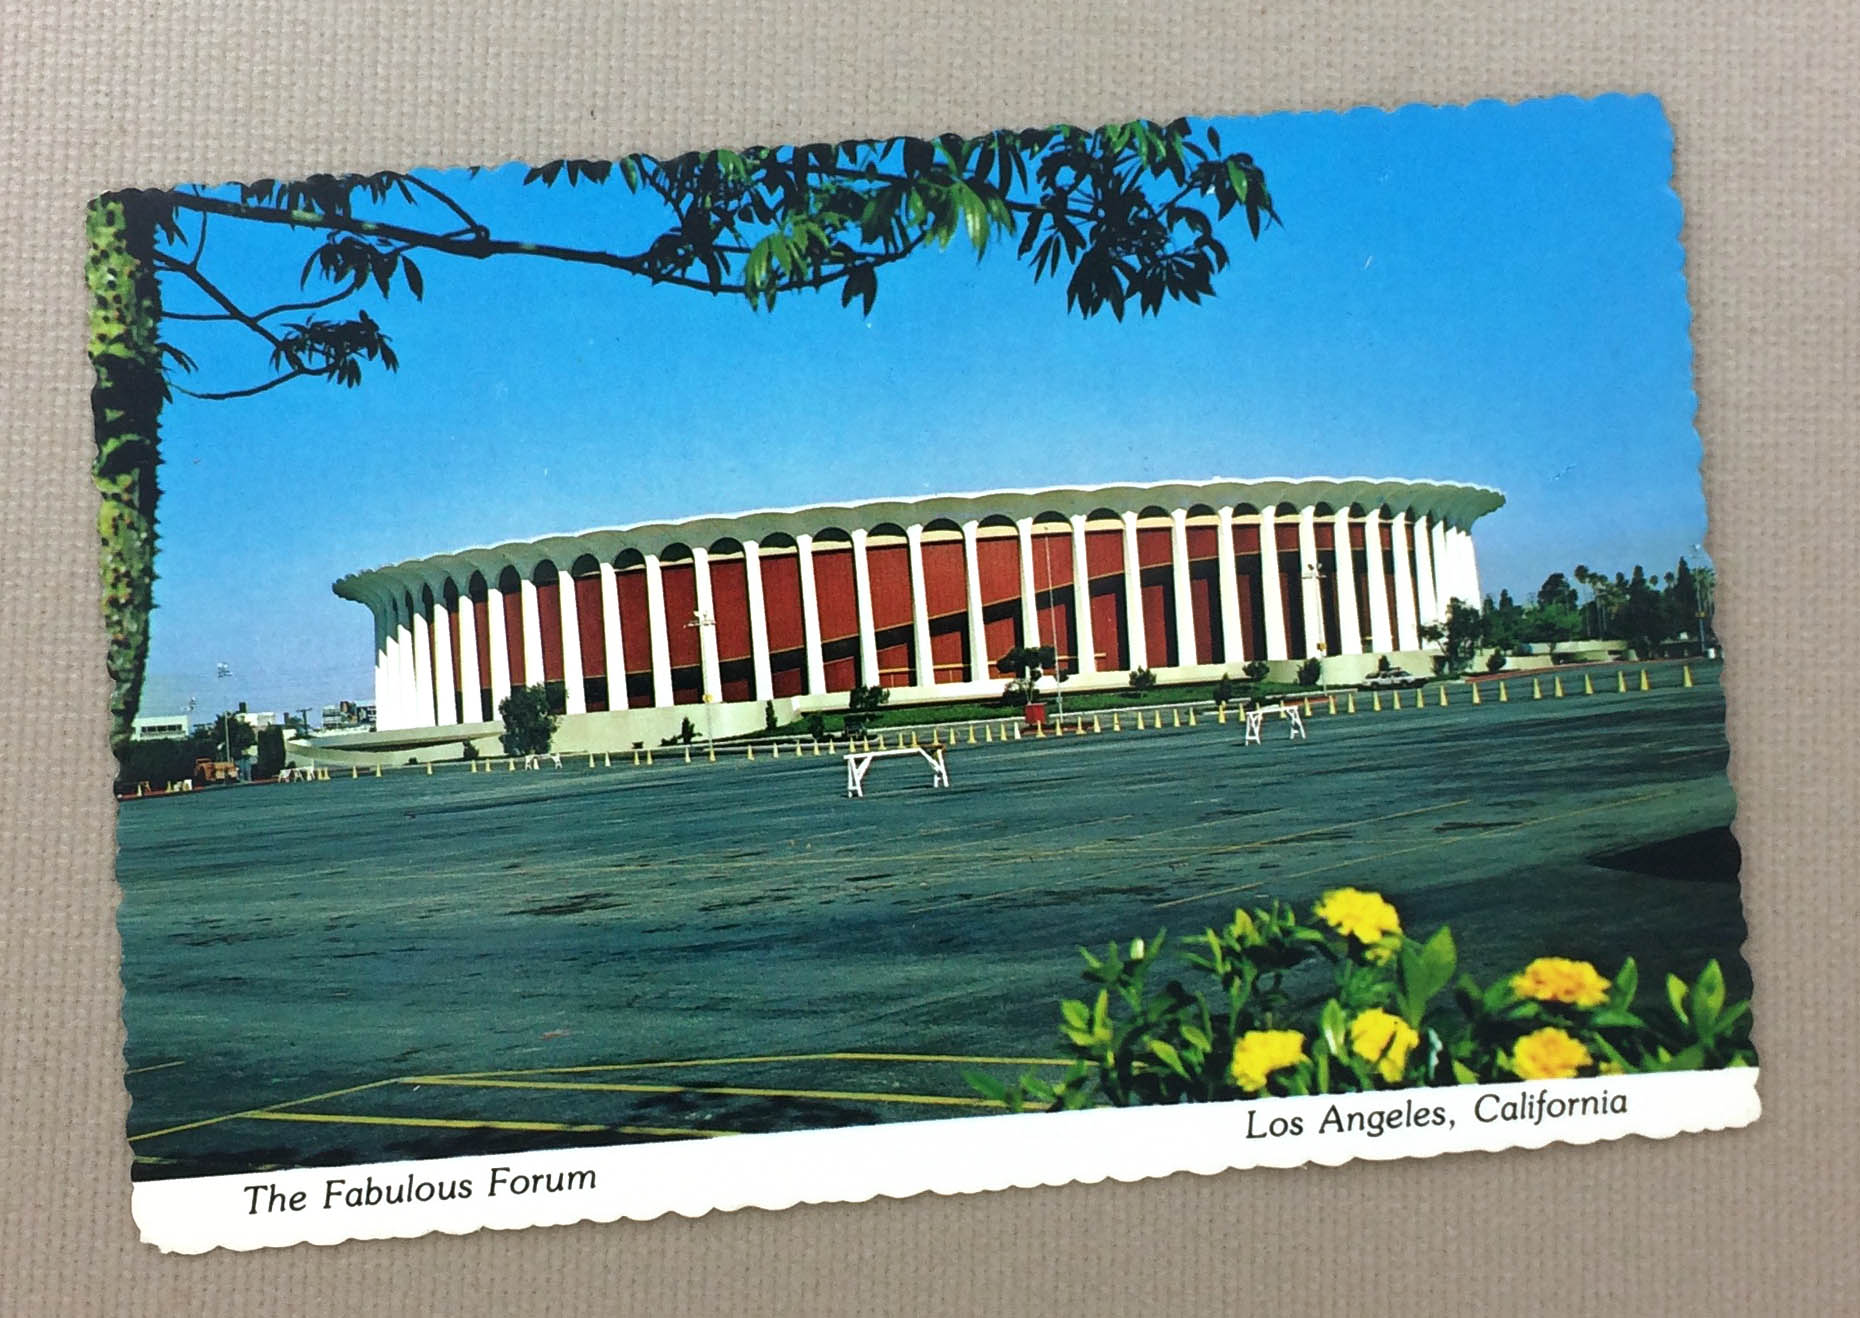 The Fabulous Forum